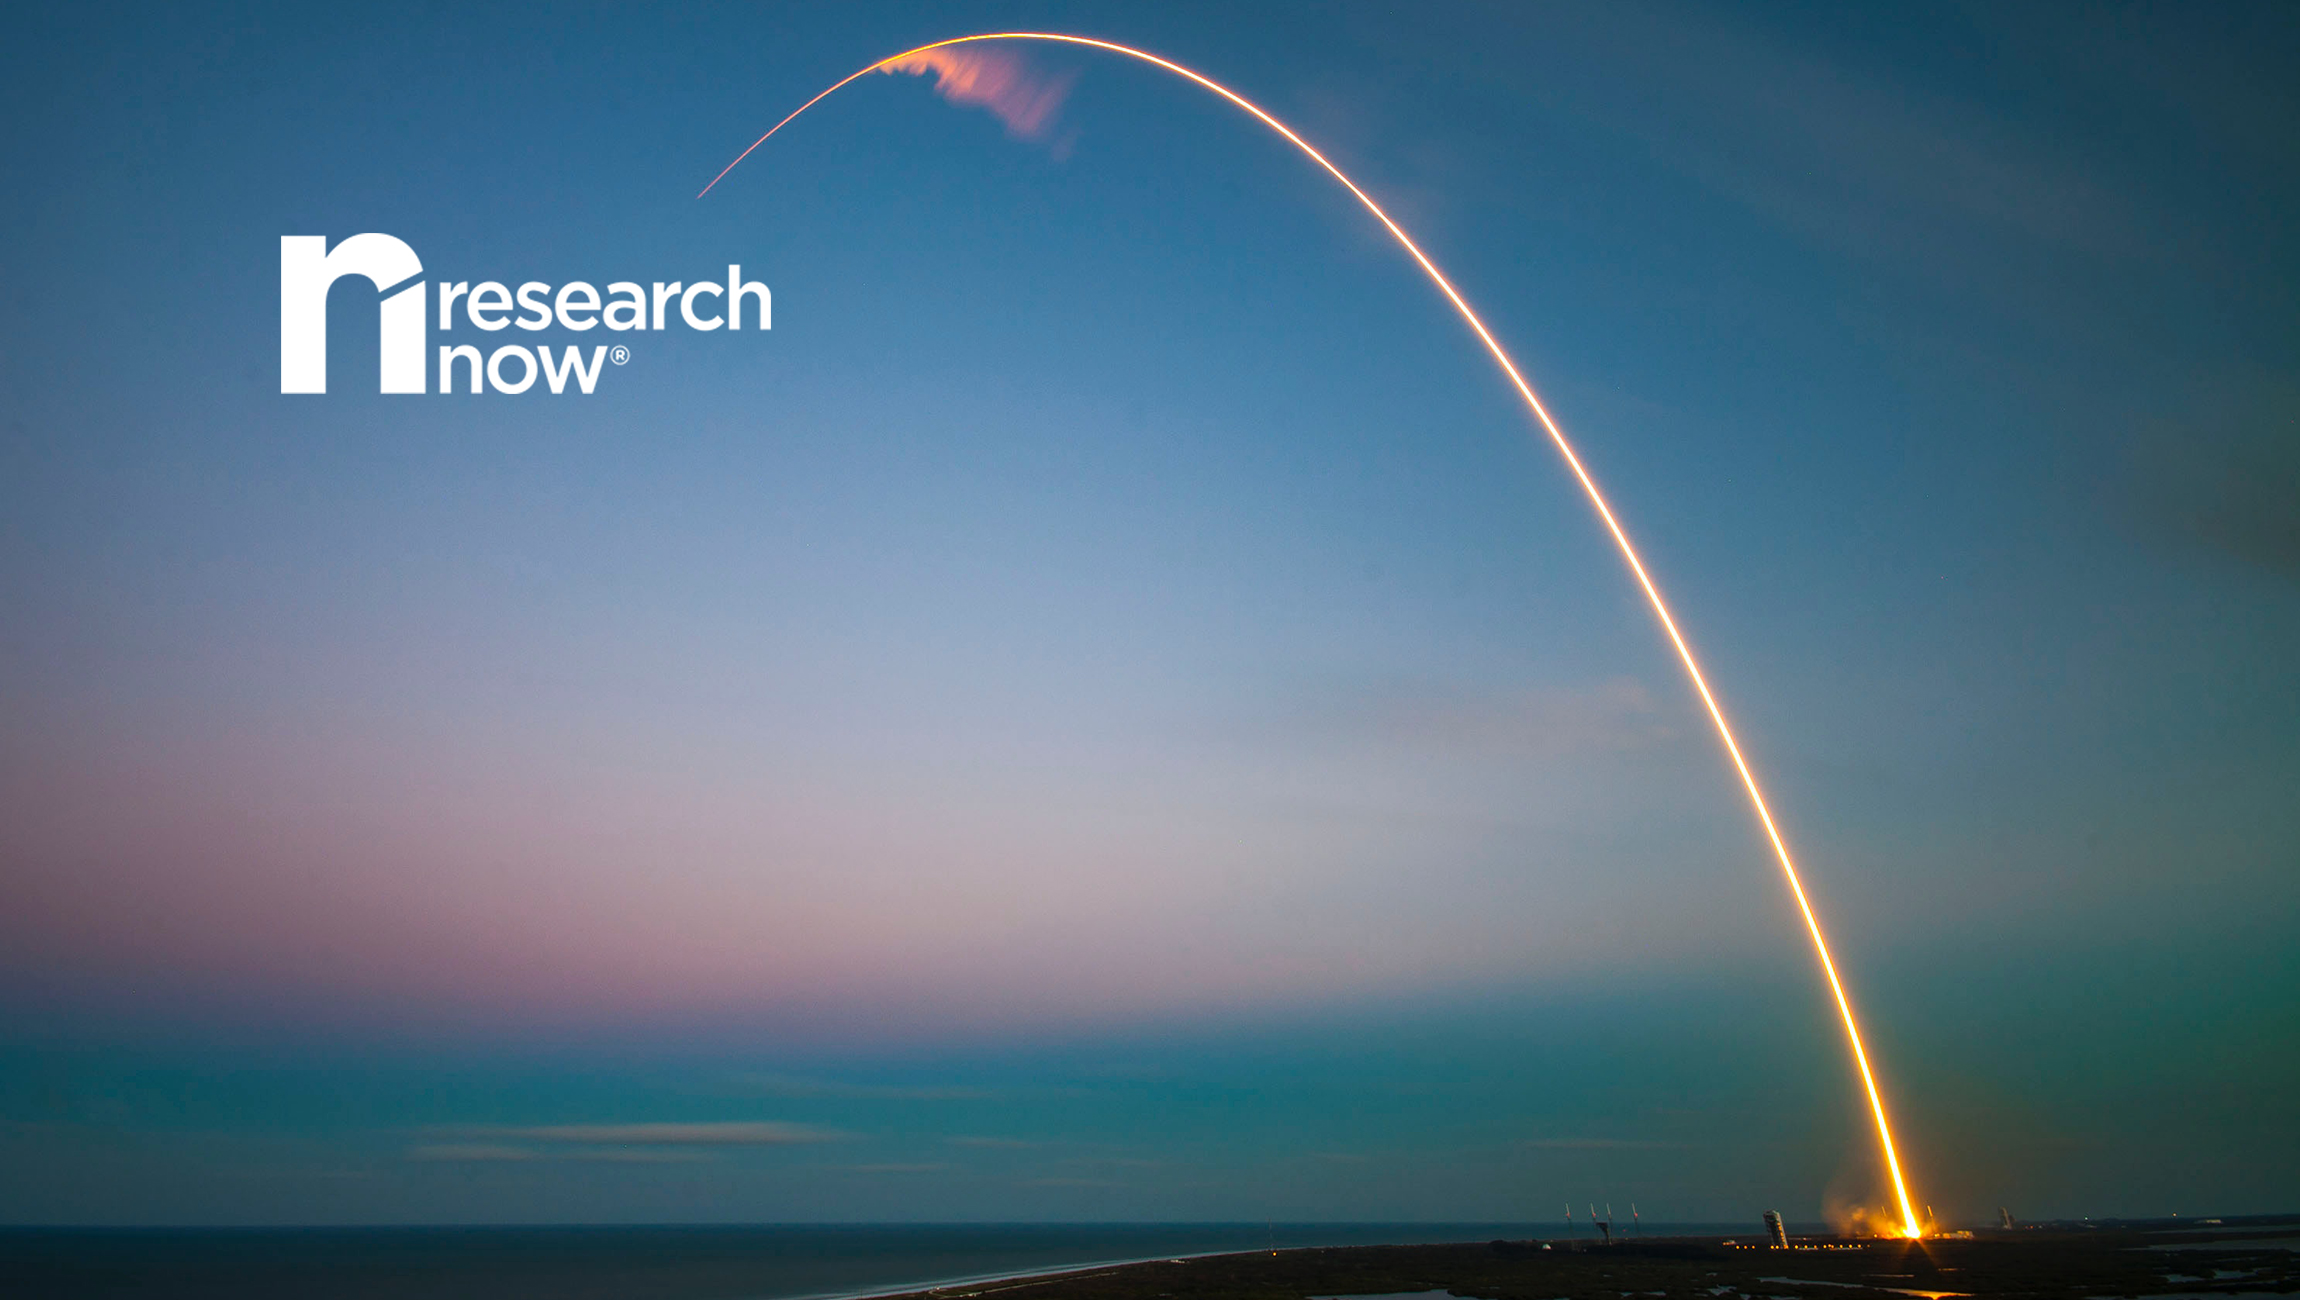 Research Now SSI Launches Industry's First Cross-Media Advertising Dashboard